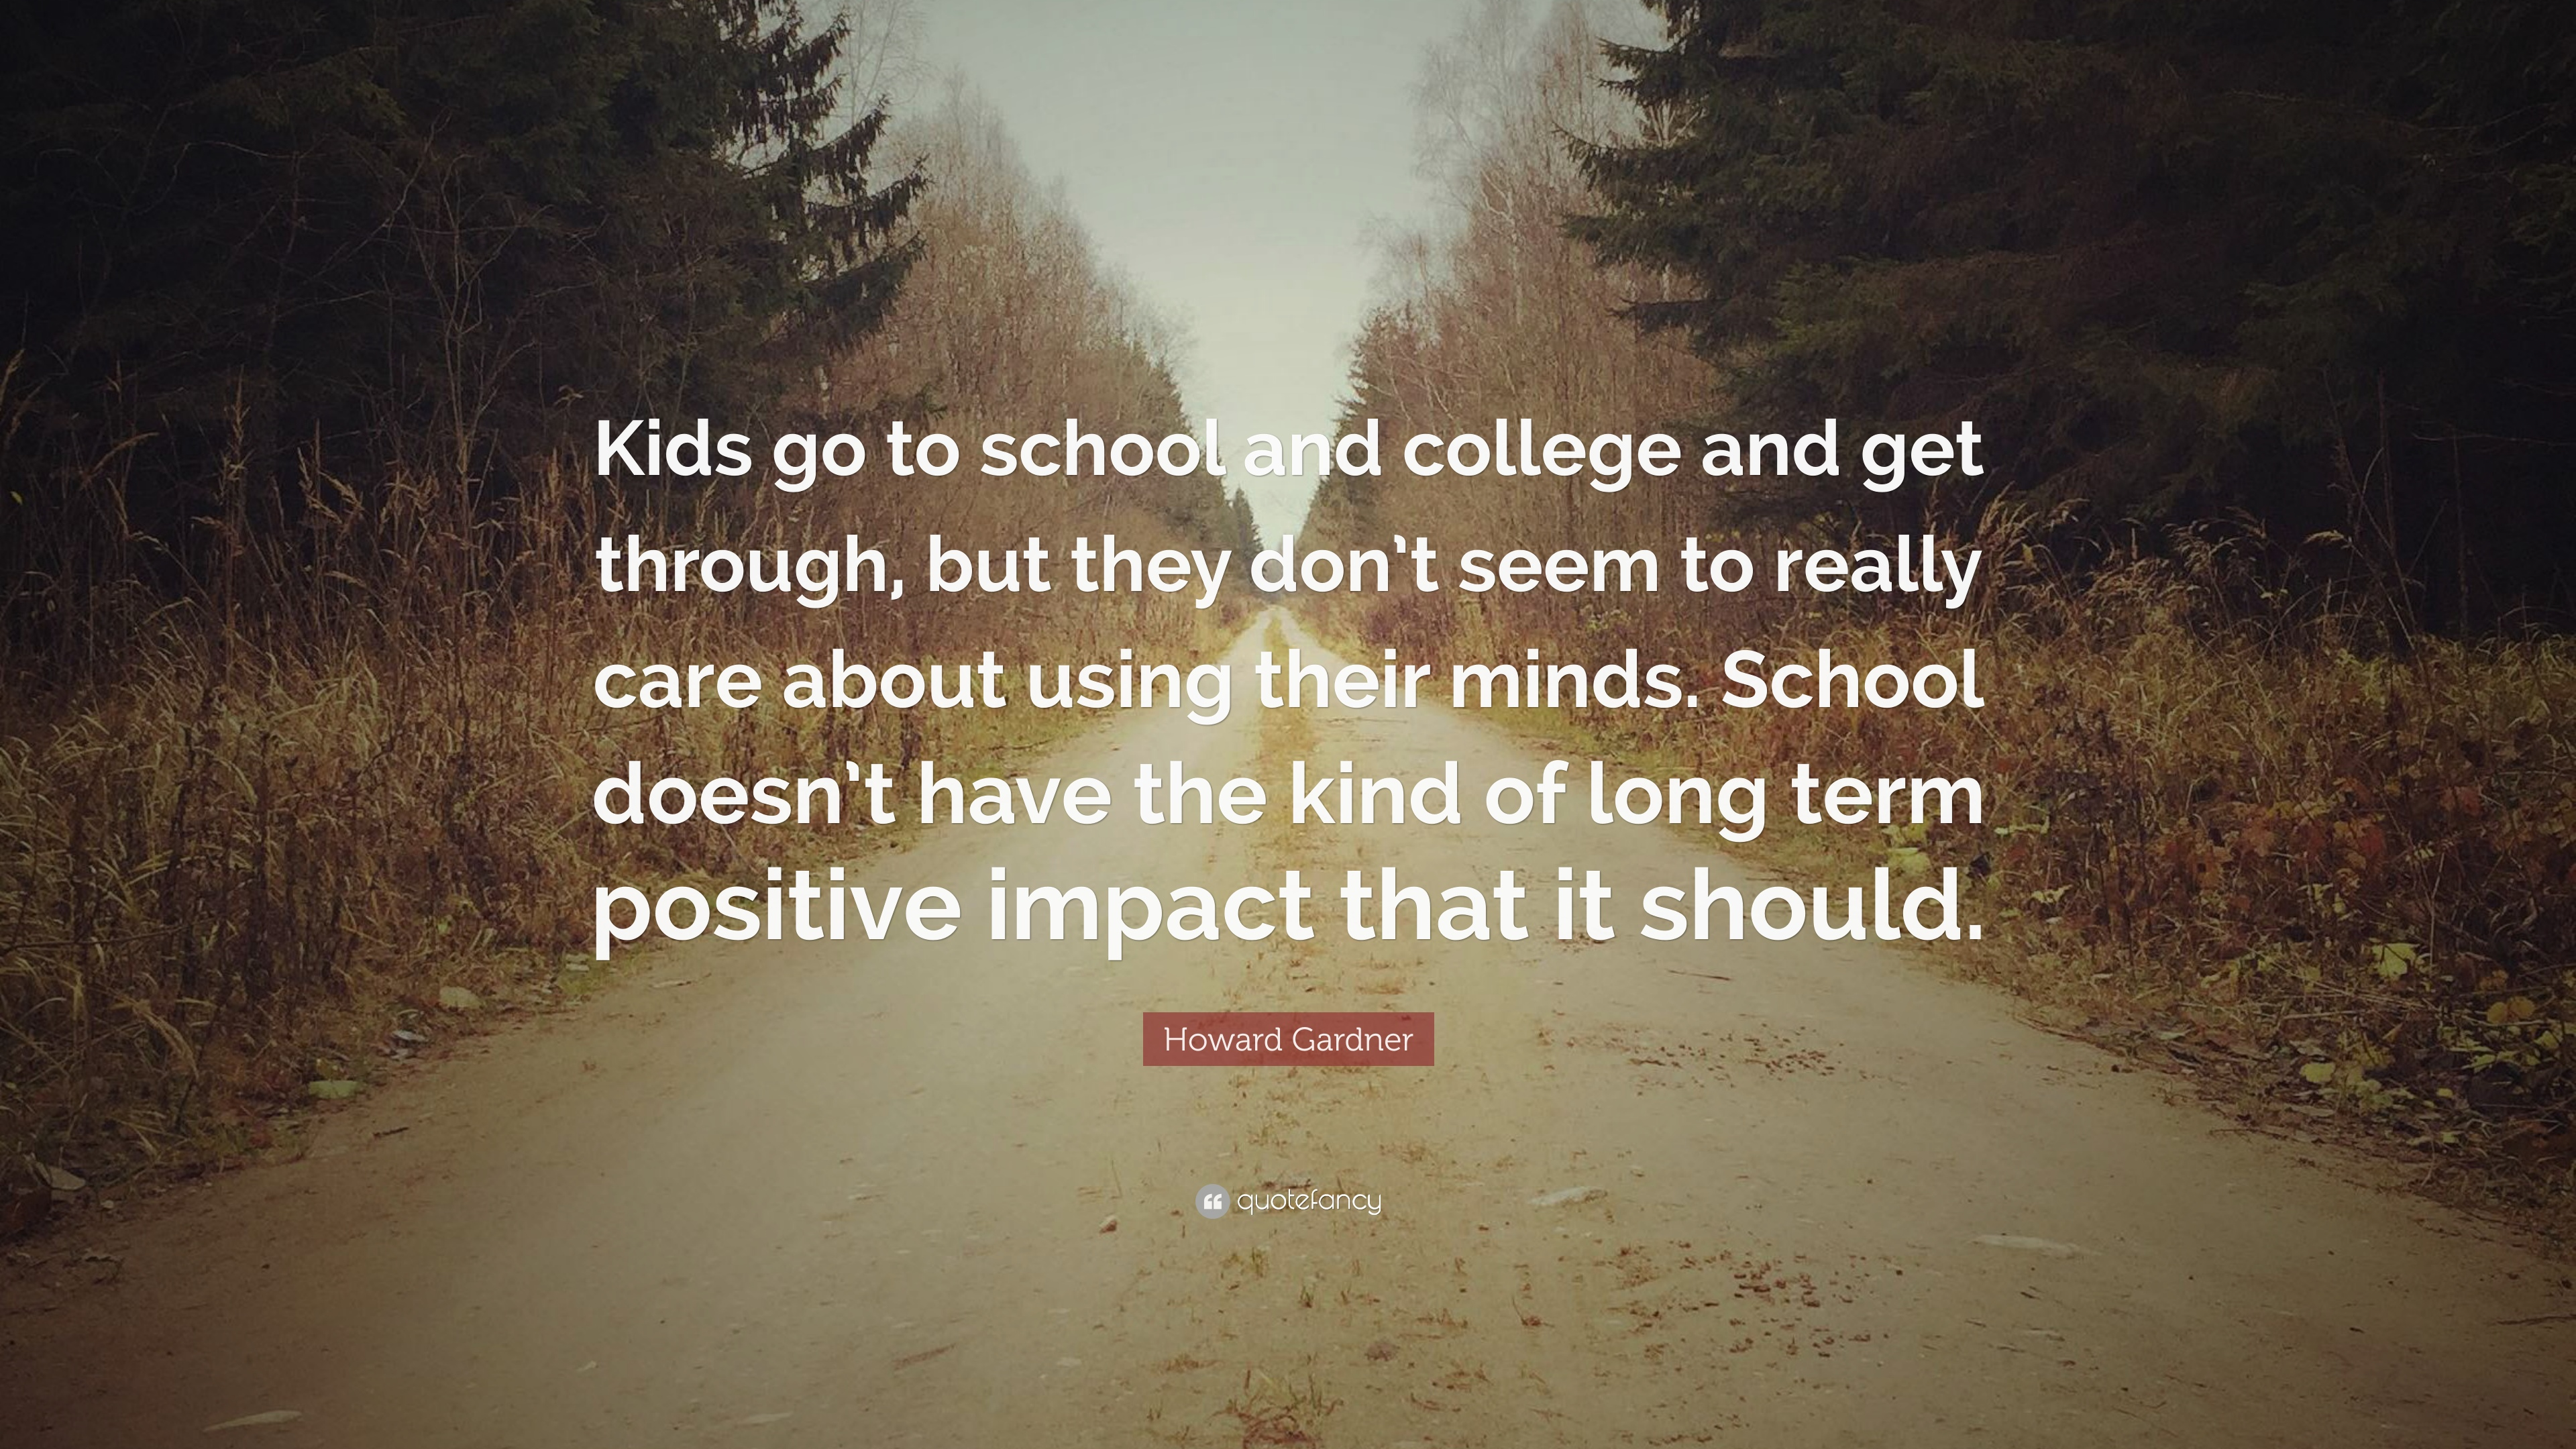 Howard Gardner Quote Kids Go To School And College And Get Through